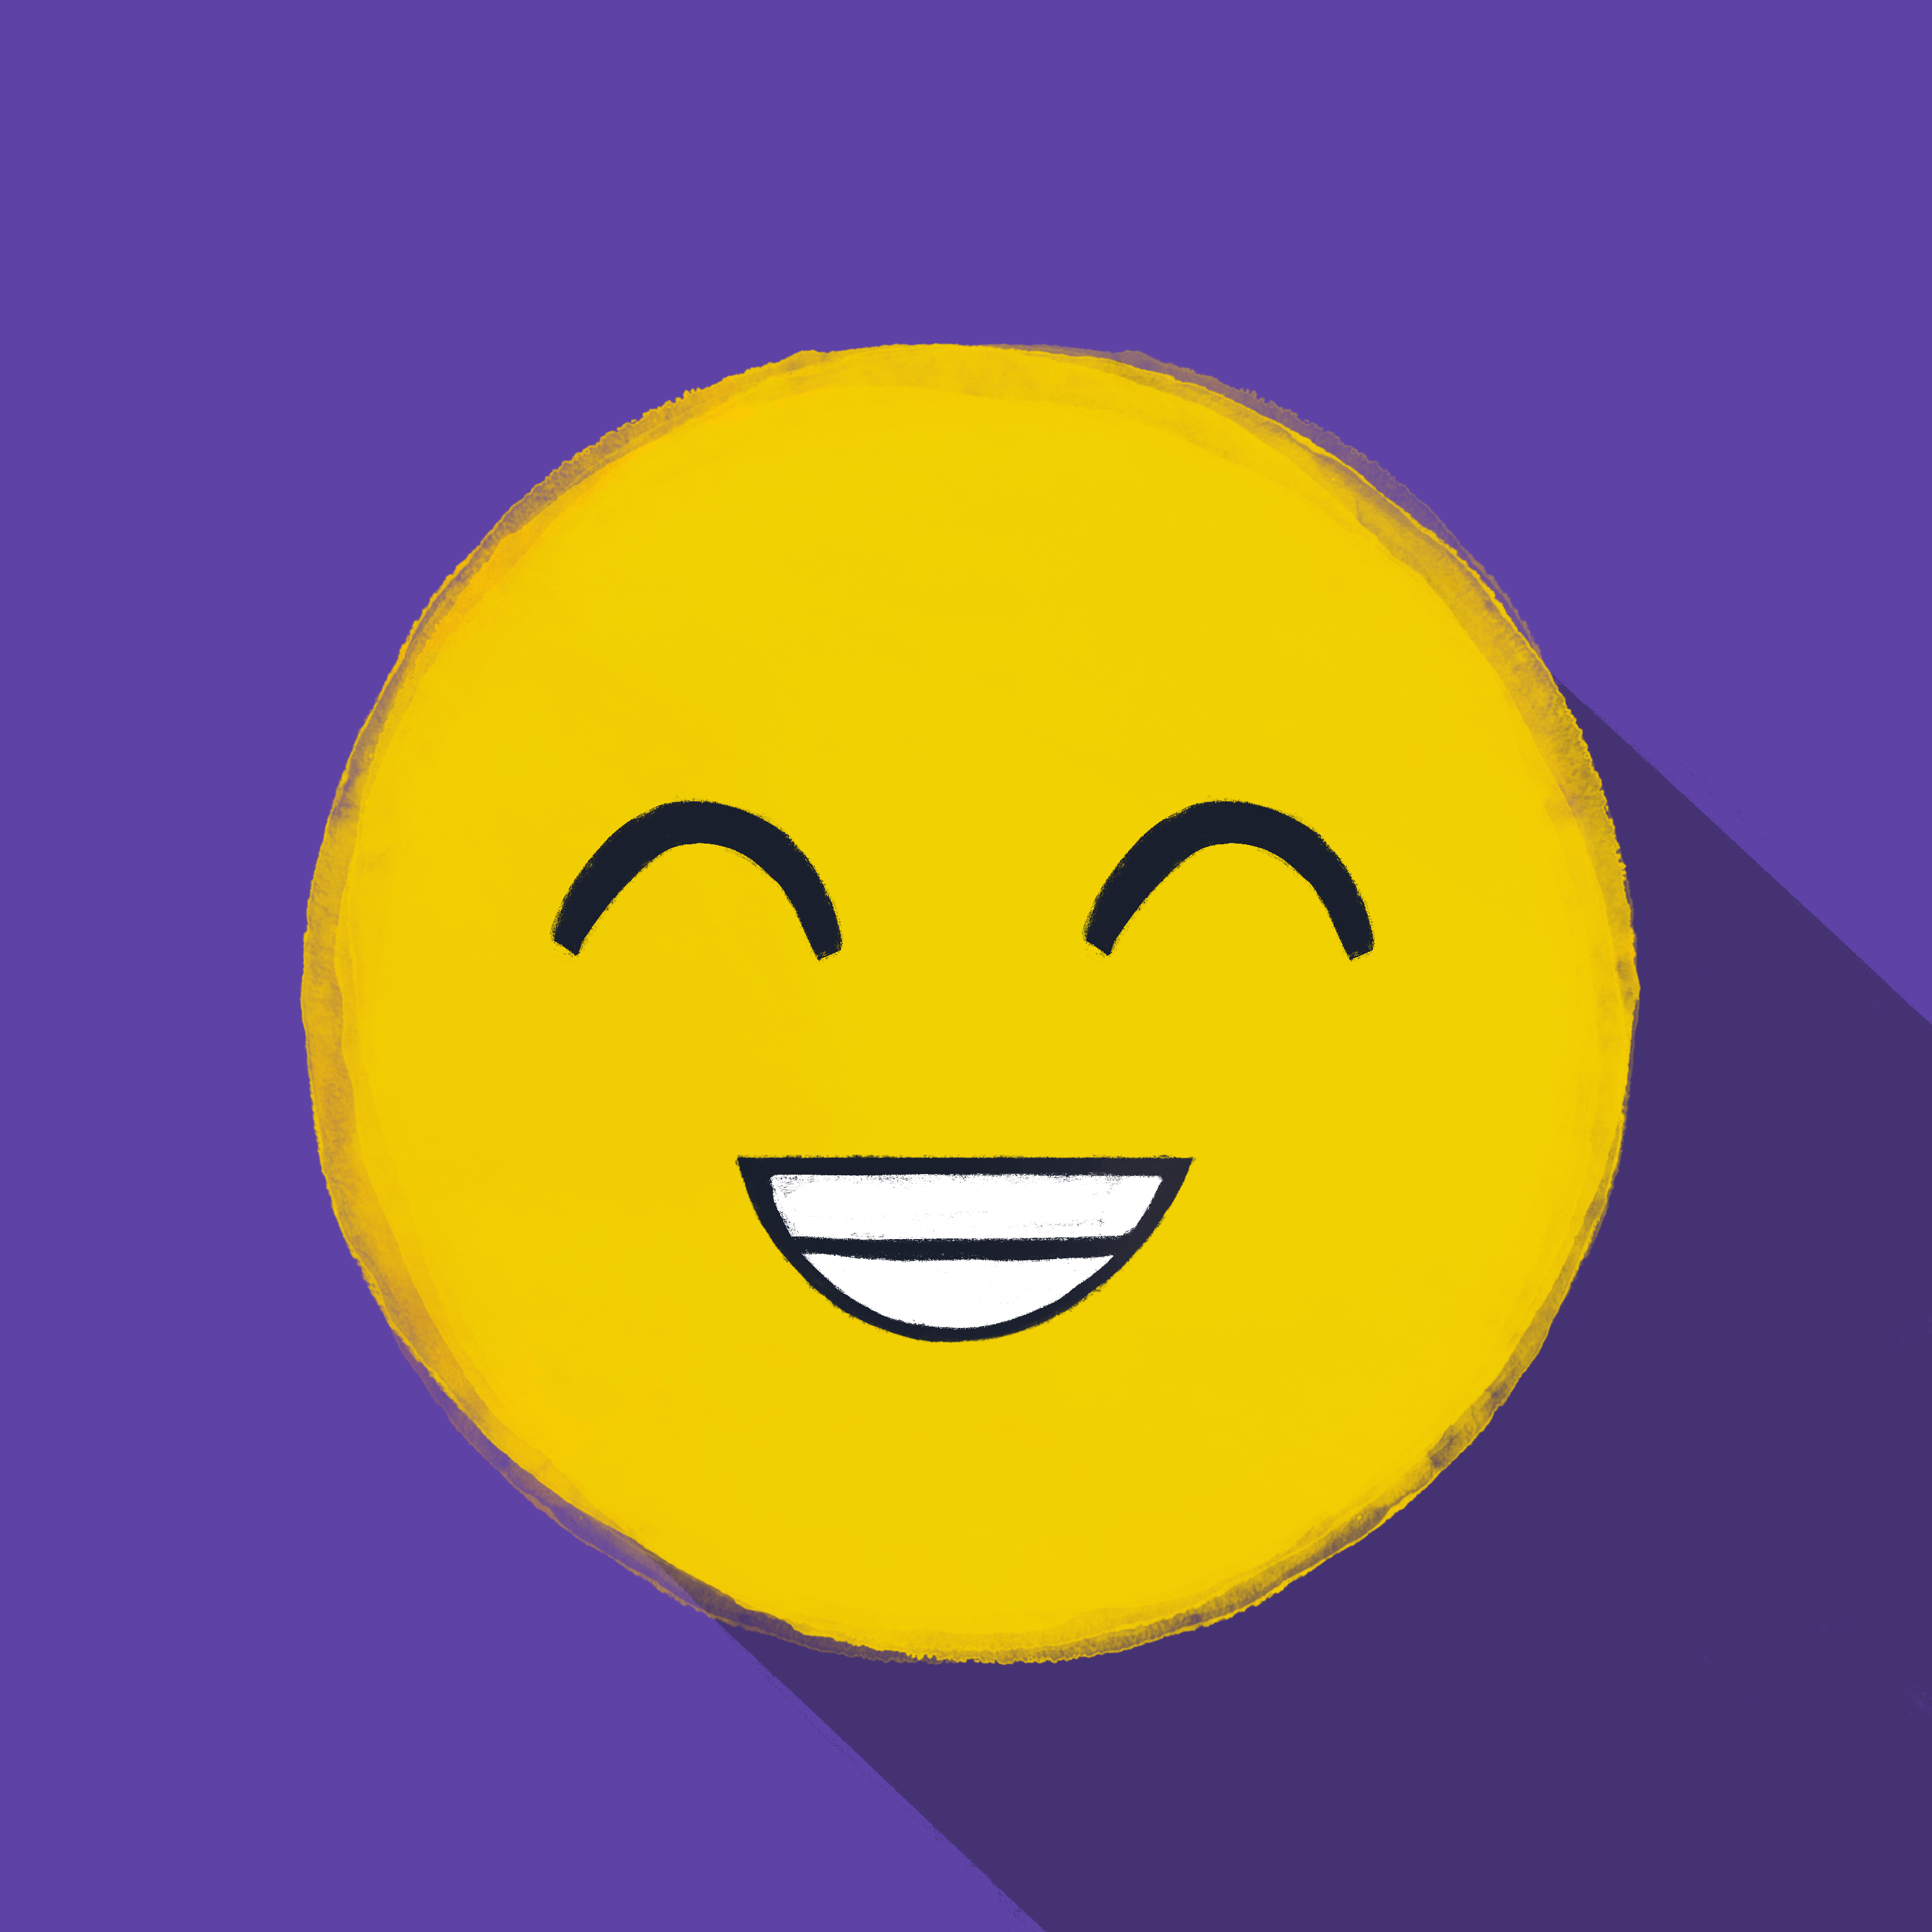 6-Emoji-Reimagined-Beaming_Face_With_Smiling_Eyes-Kiwani-Dolean